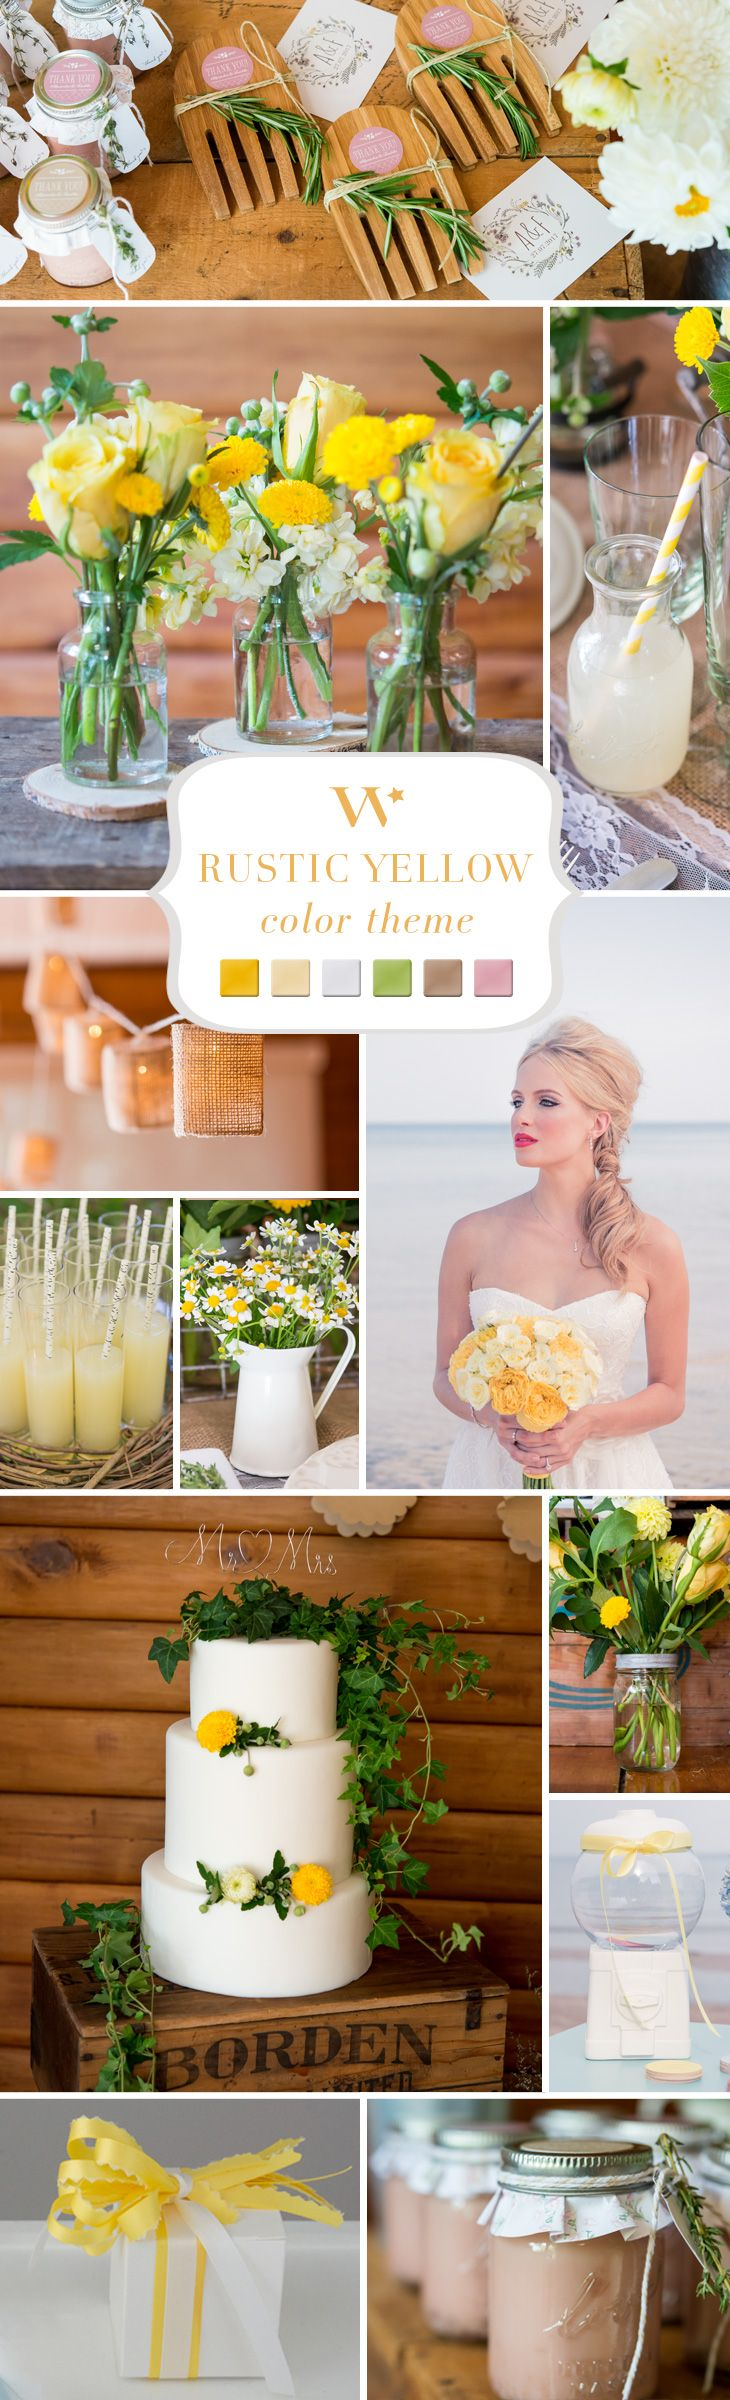 Yellow produces an instant warming effect. The color of sunshine, it naturally evokes feelings of joy and happiness. Add touches of this happy color to your day for a bright accent to your already stunning celebration.